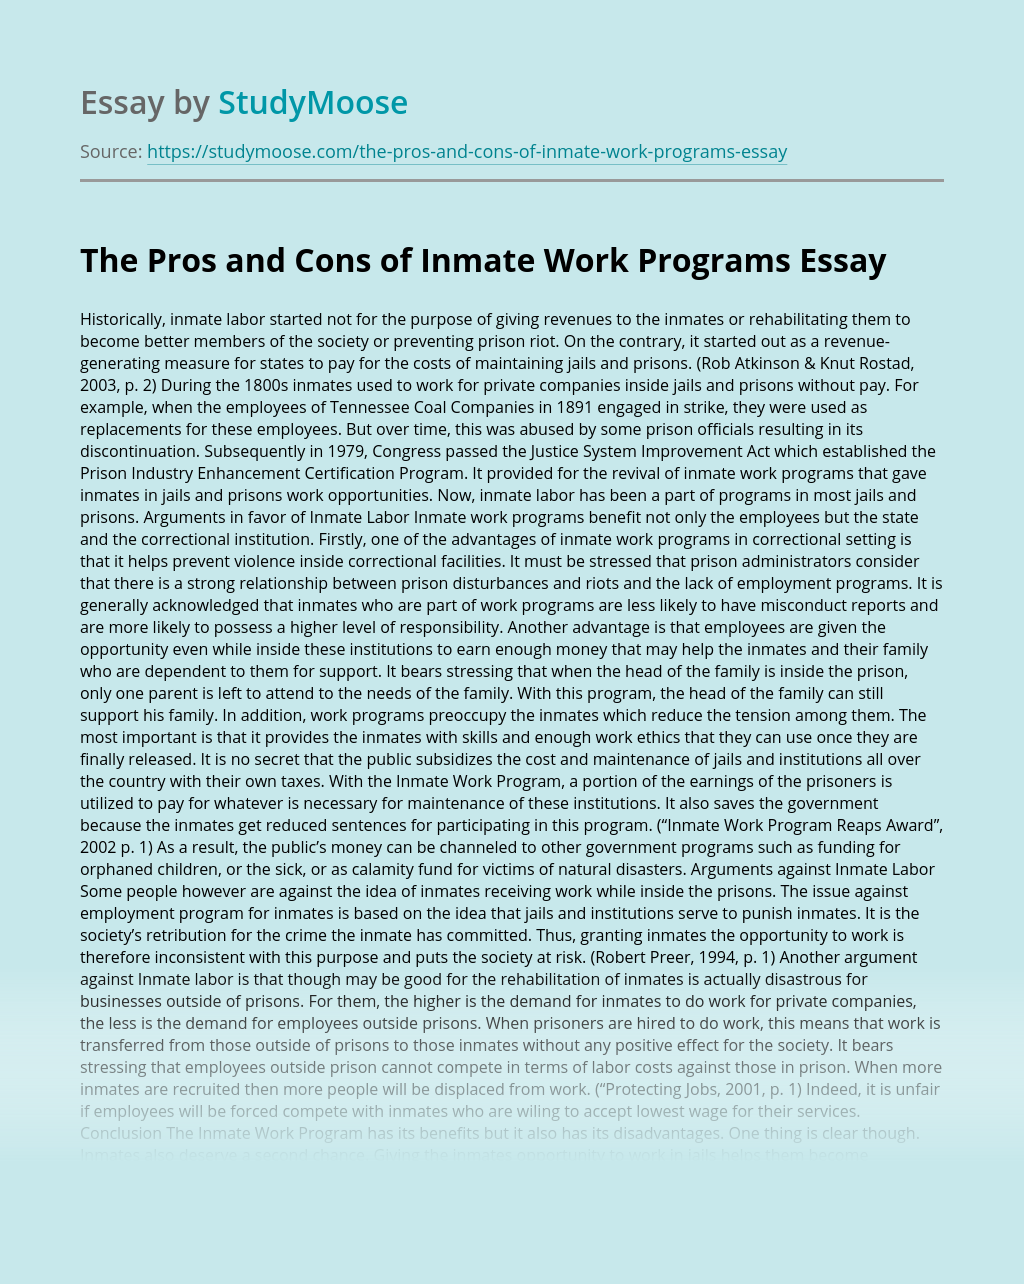 The Pros and Cons of Inmate Work Programs